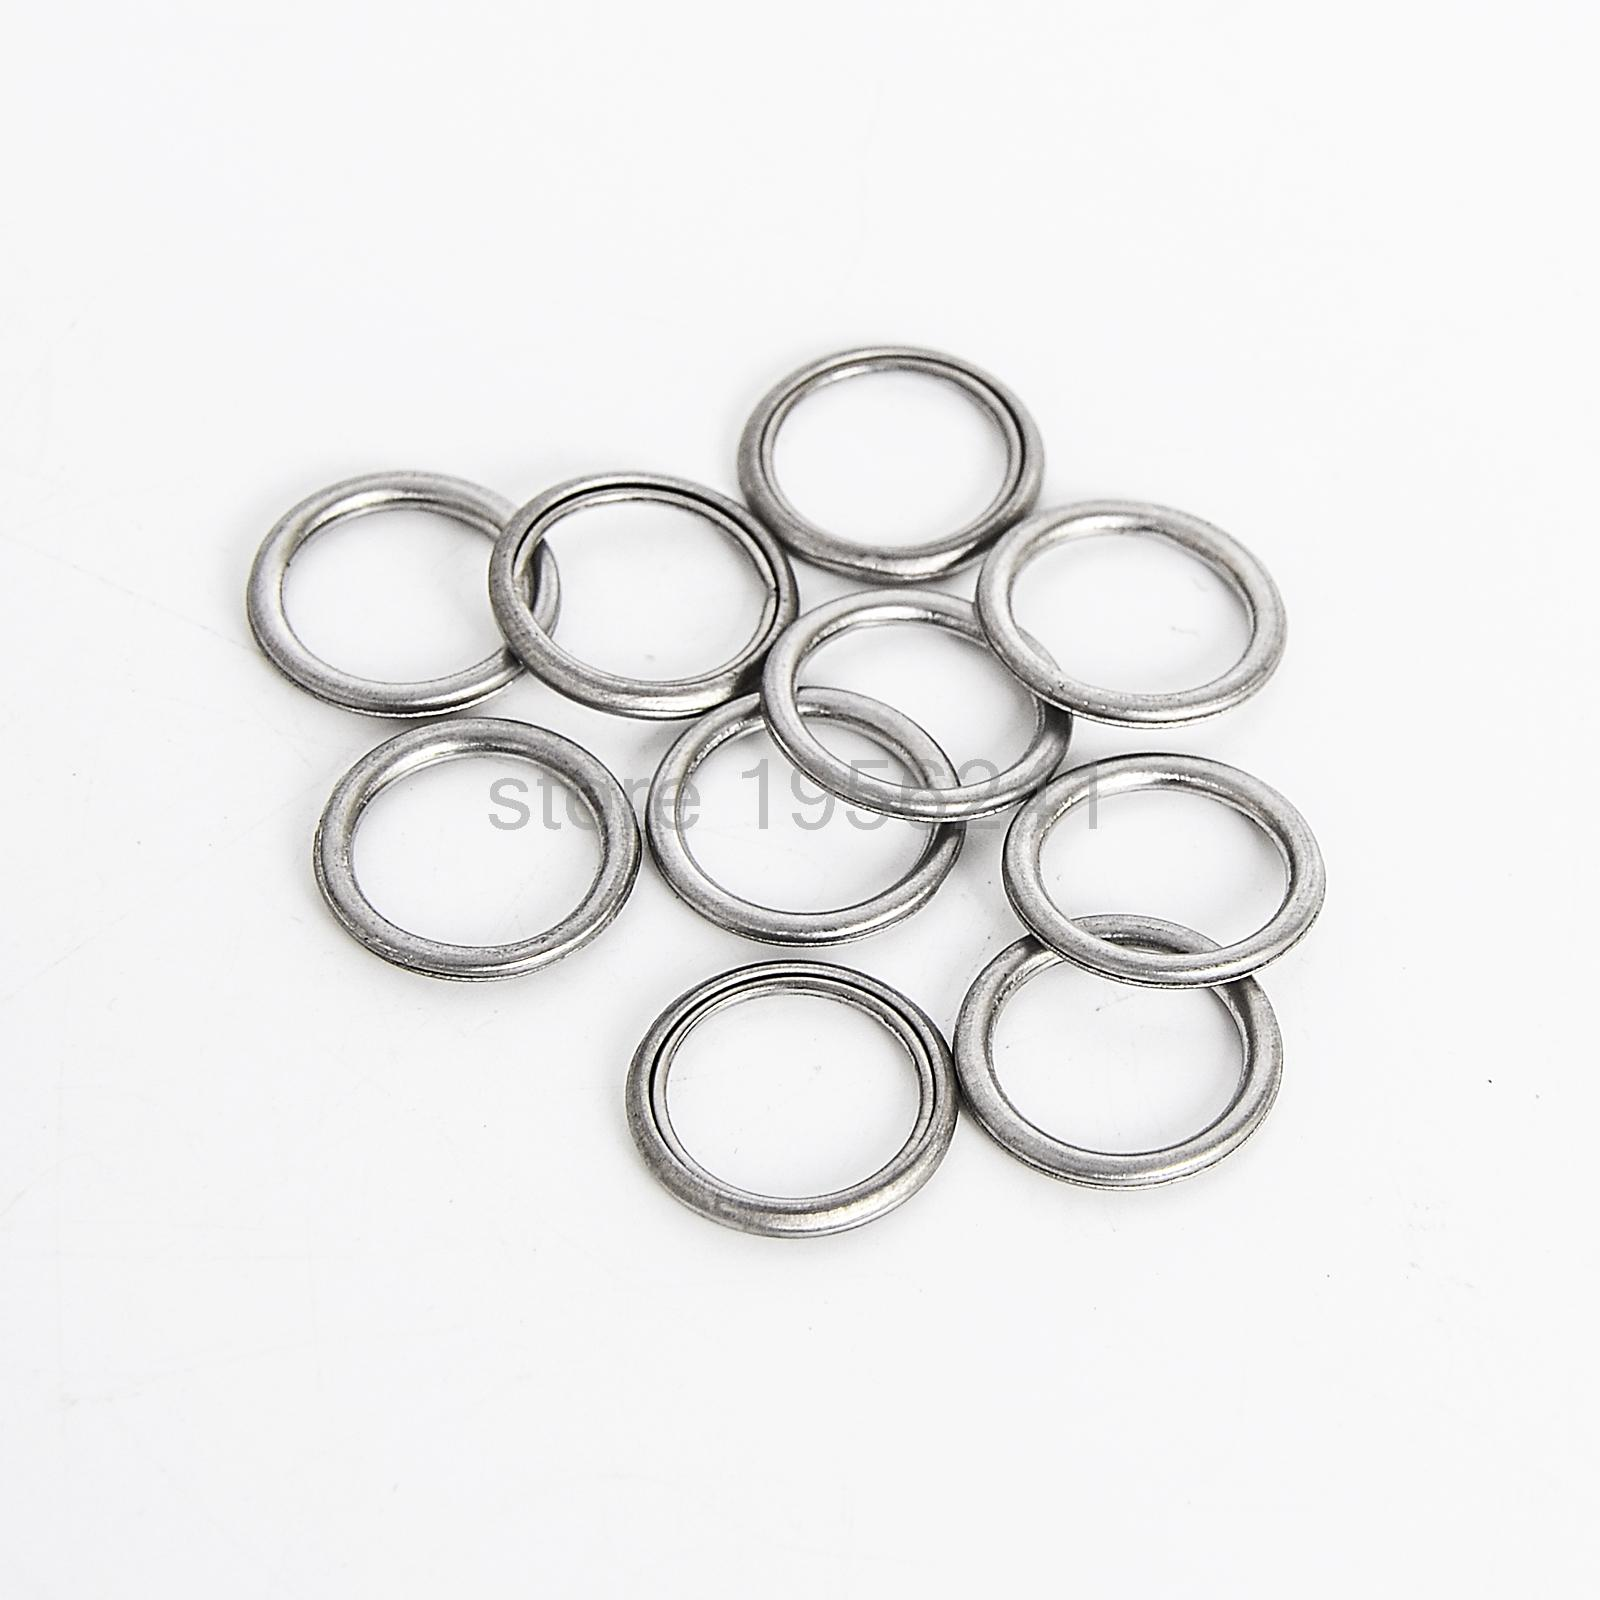 MD050317 Oil Drain Plug Gaskets New For Mitsubishi 10PCS